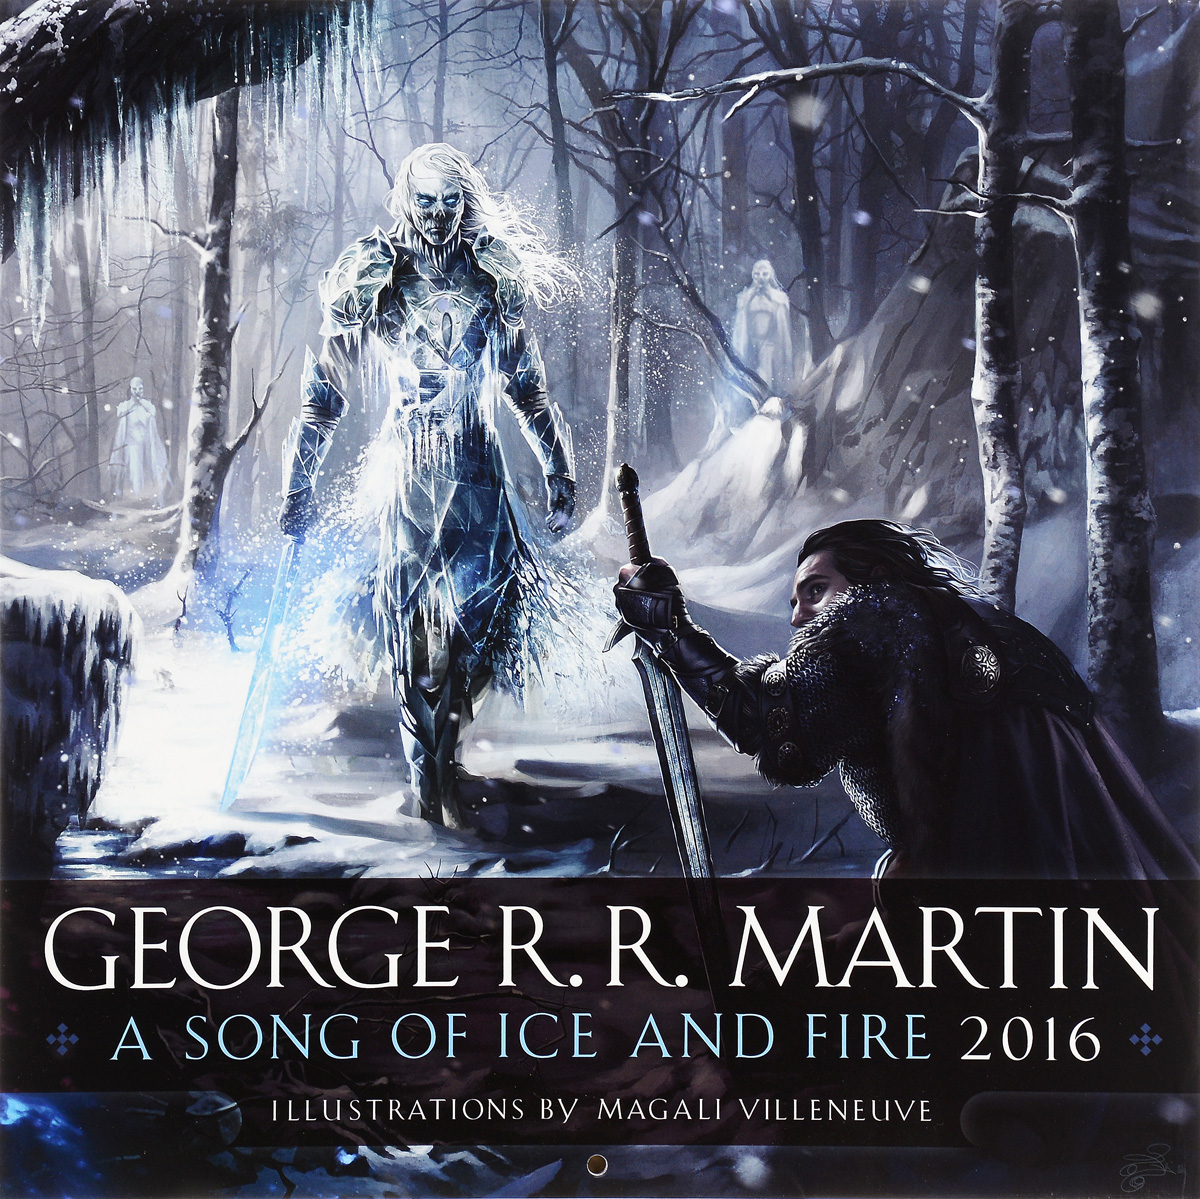 SONG OF ICE AND FIRE 2016